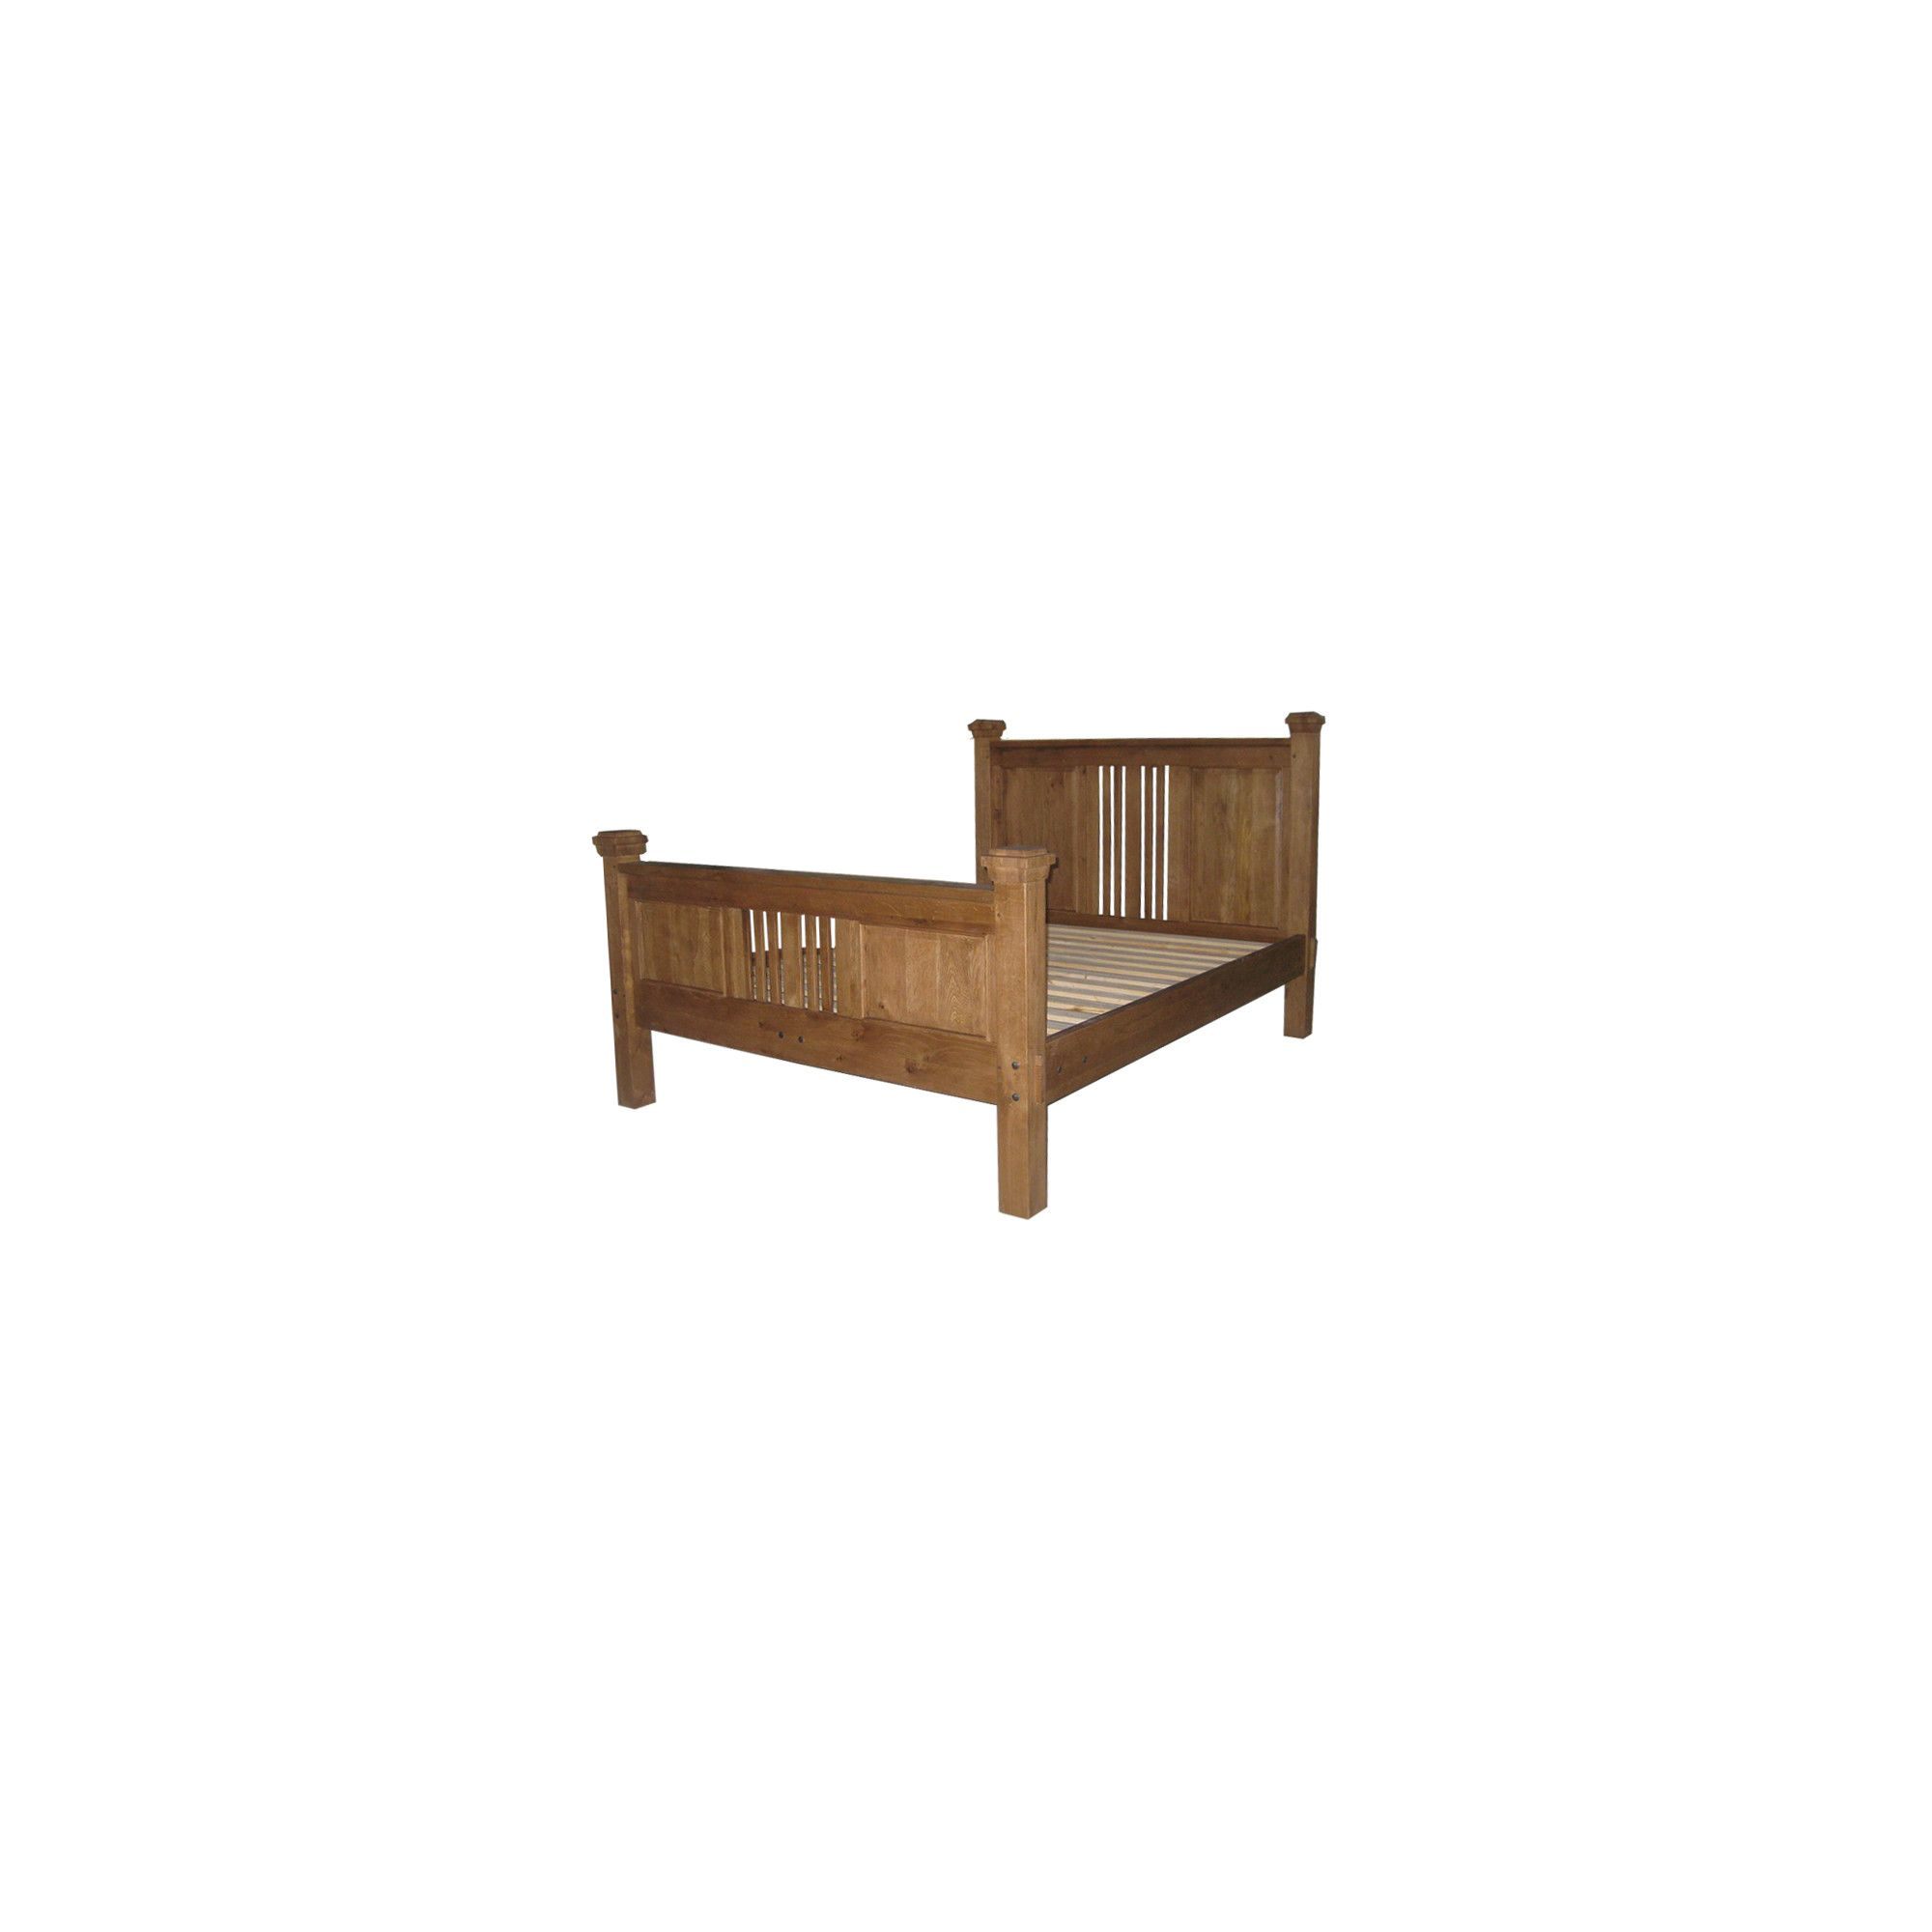 Wiseaction Riviera Bed Frame - Super King at Tesco Direct